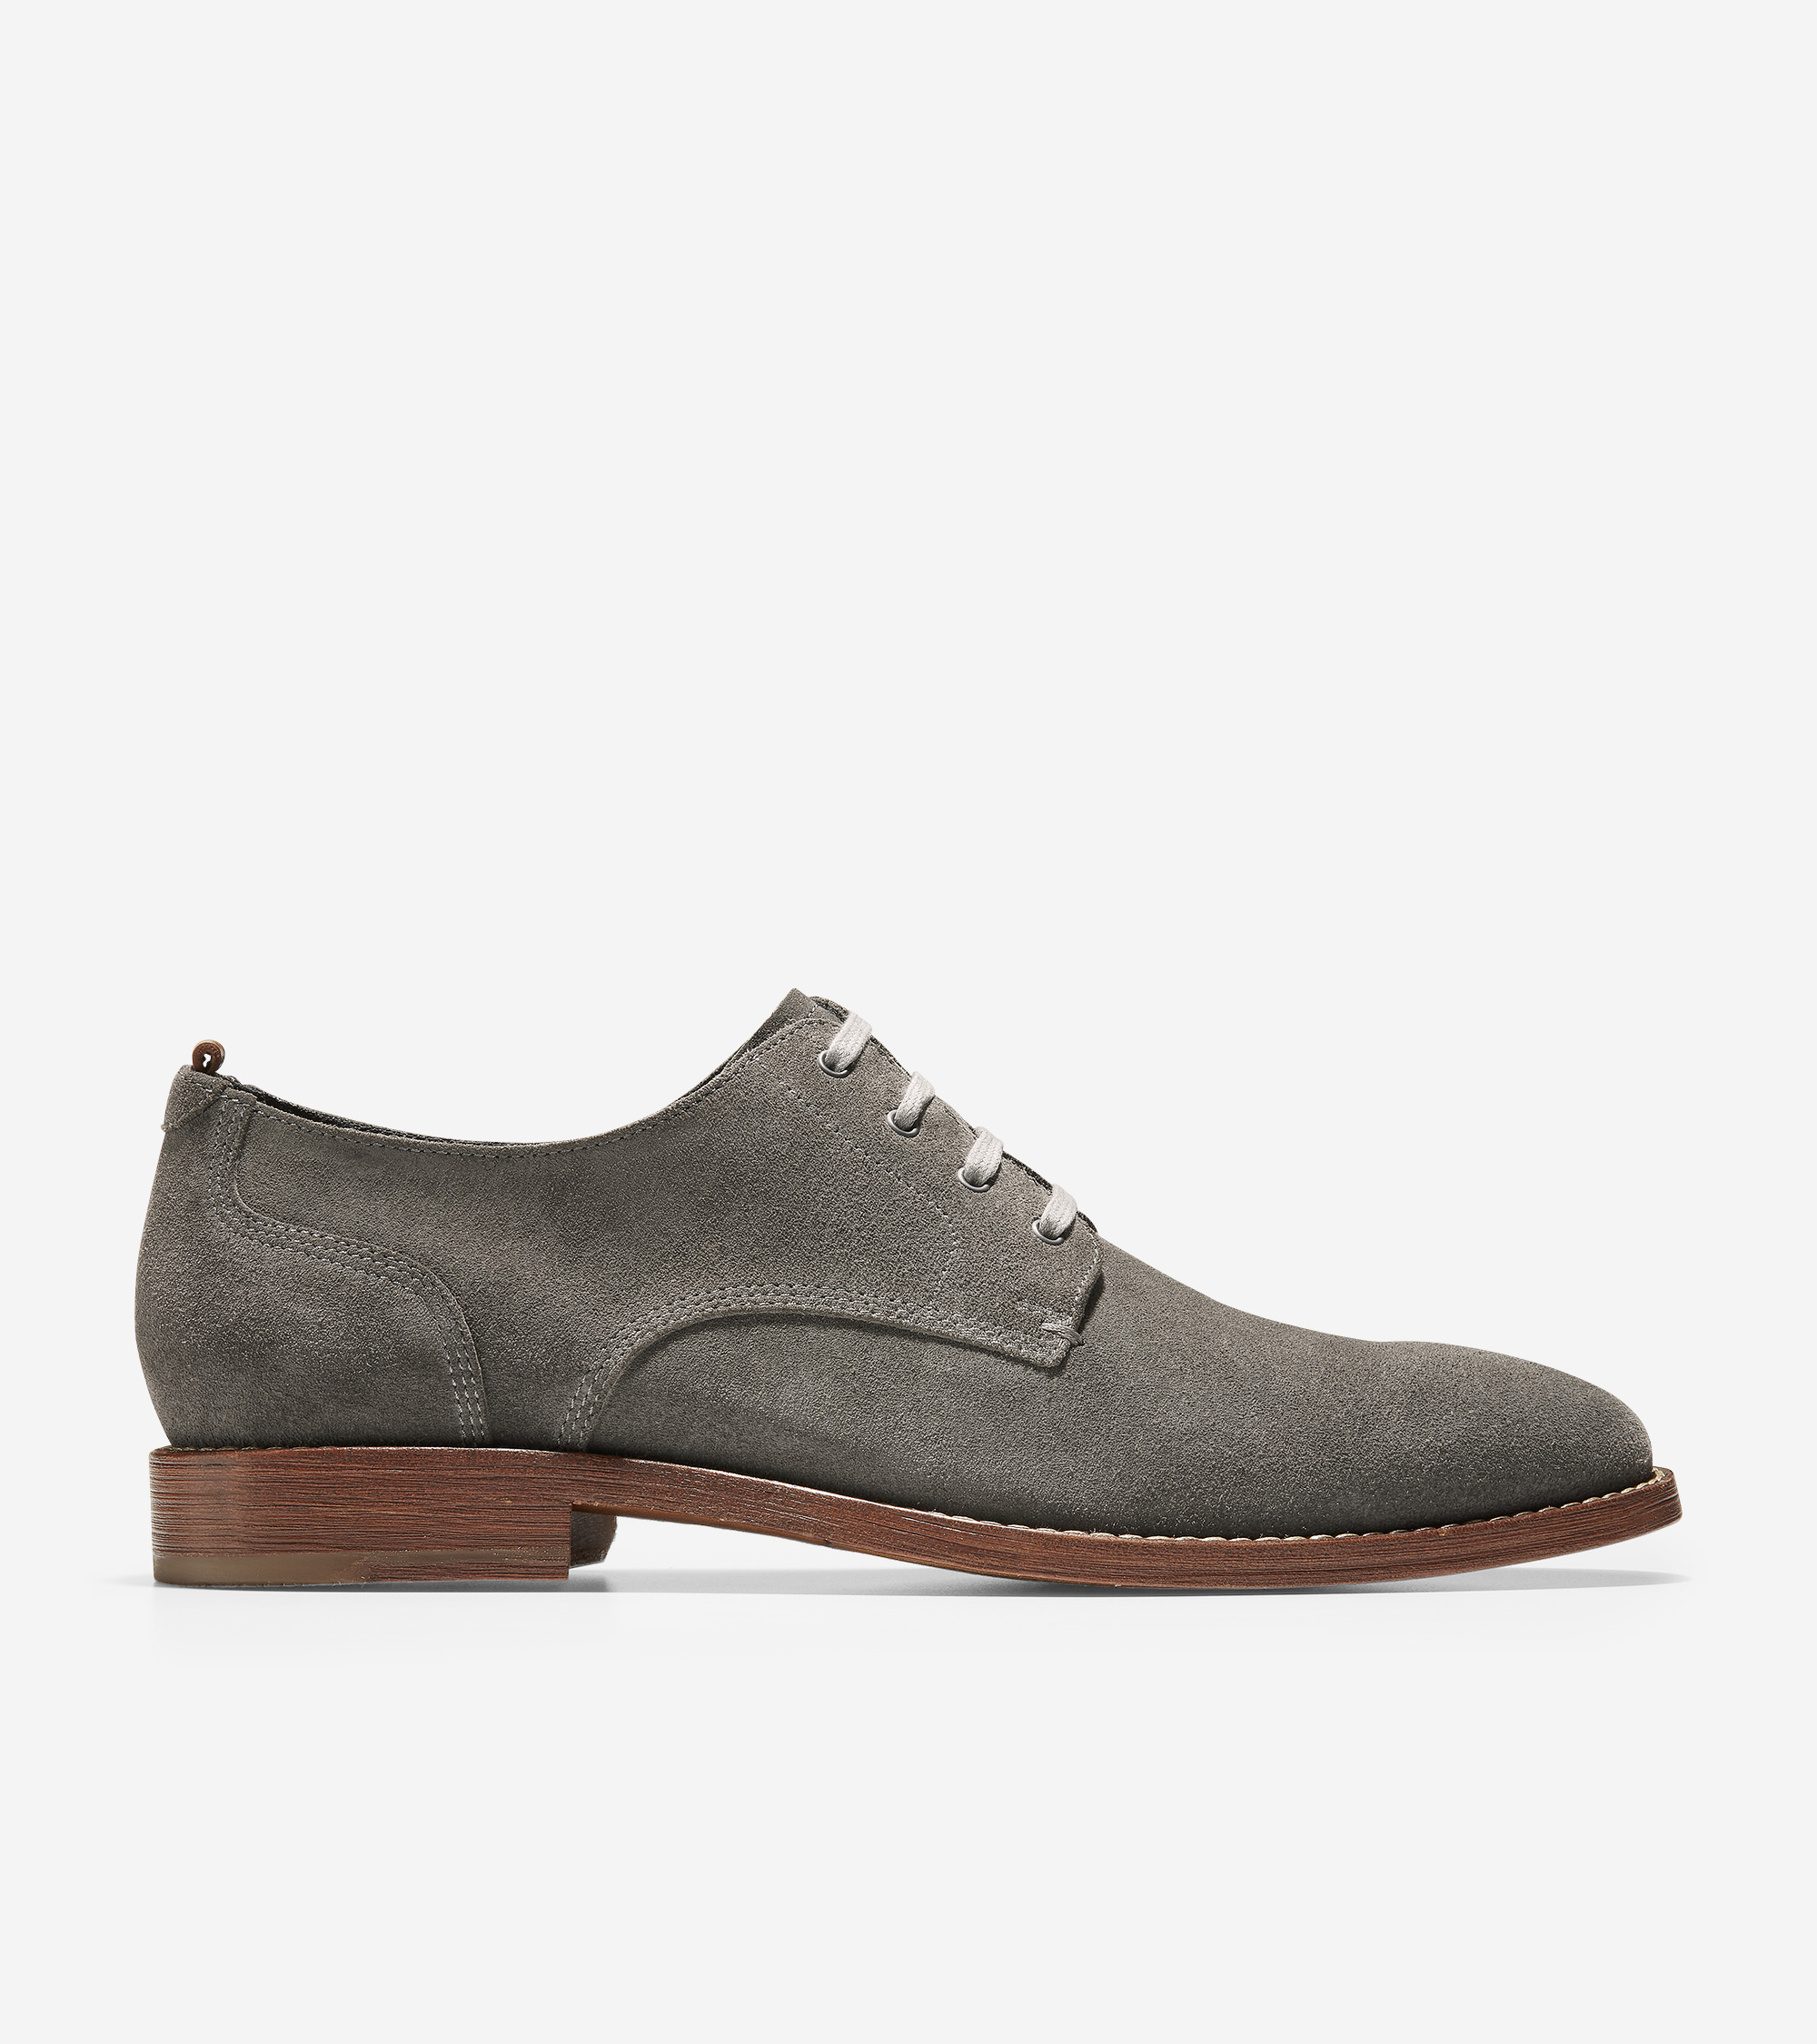 Suede_Shoes_3_-_Cole_Haan